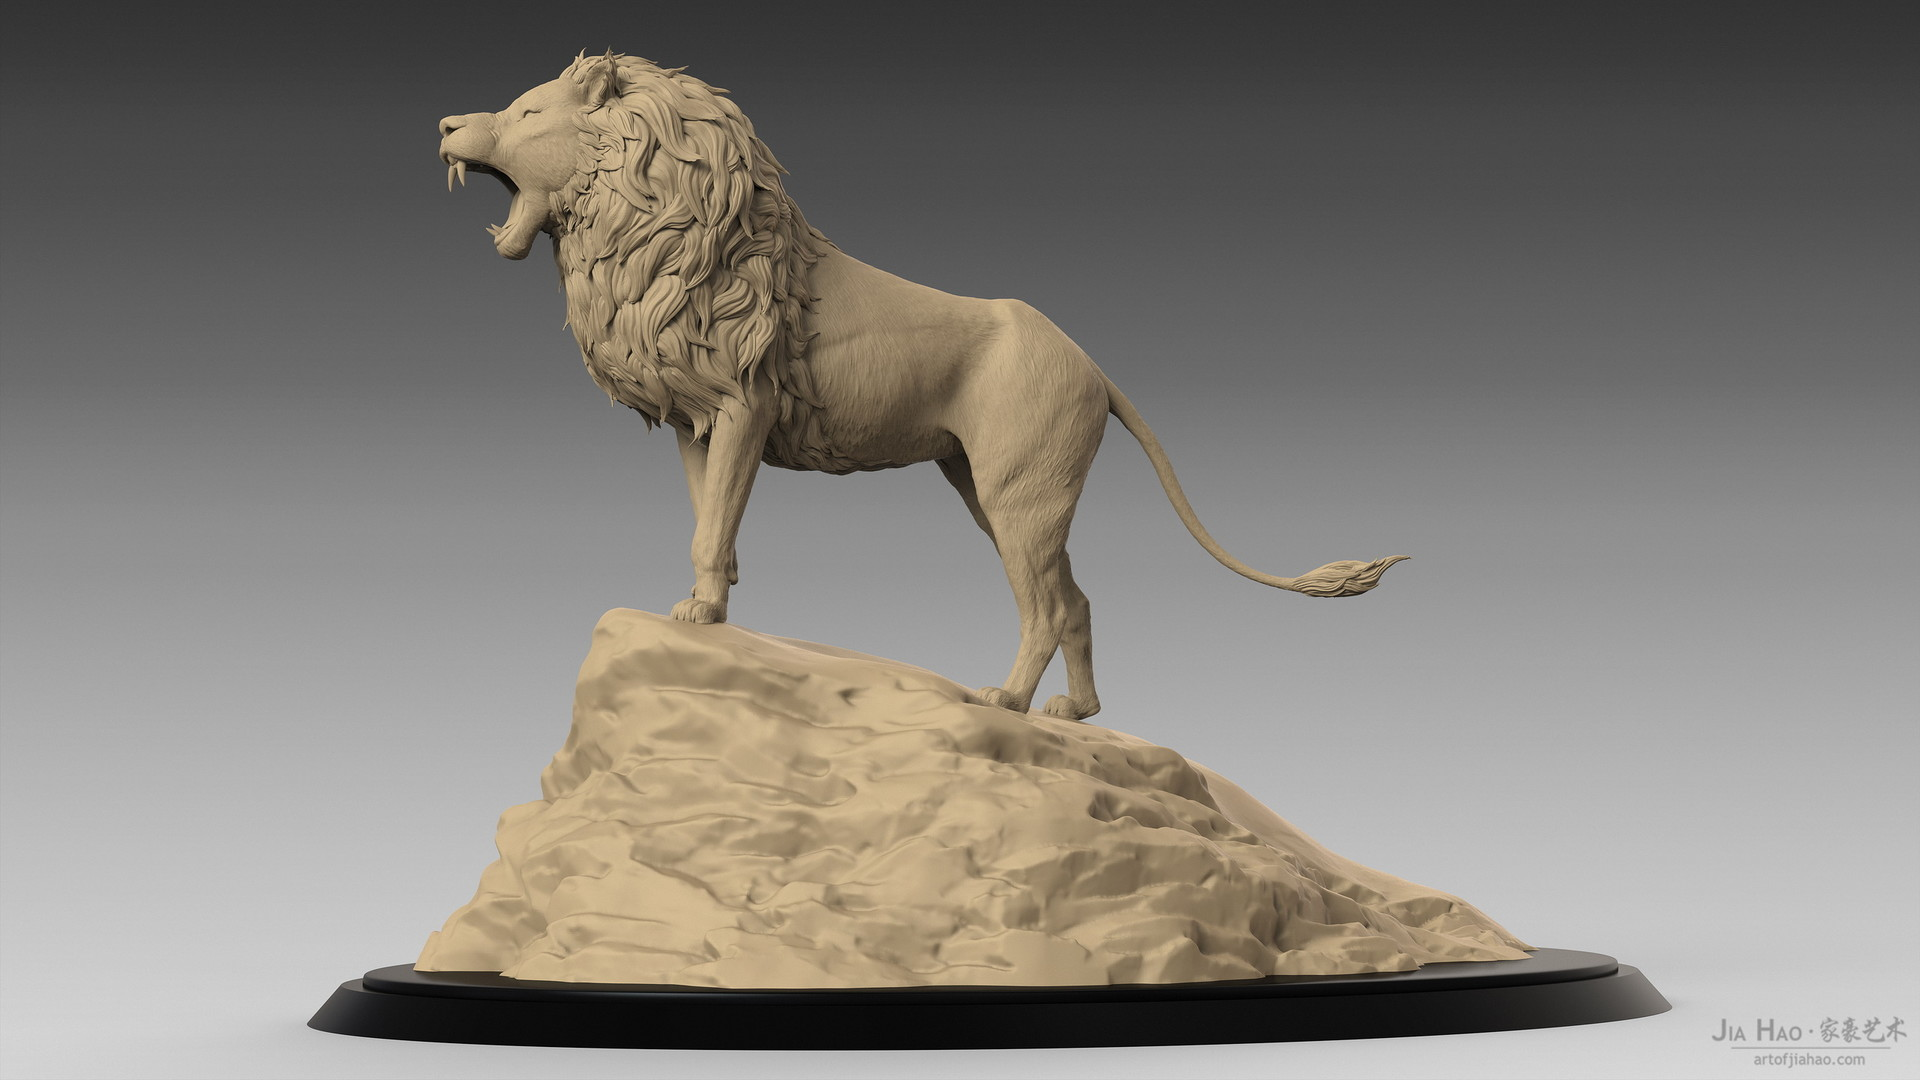 Jia hao lion digitalsculpturea 01